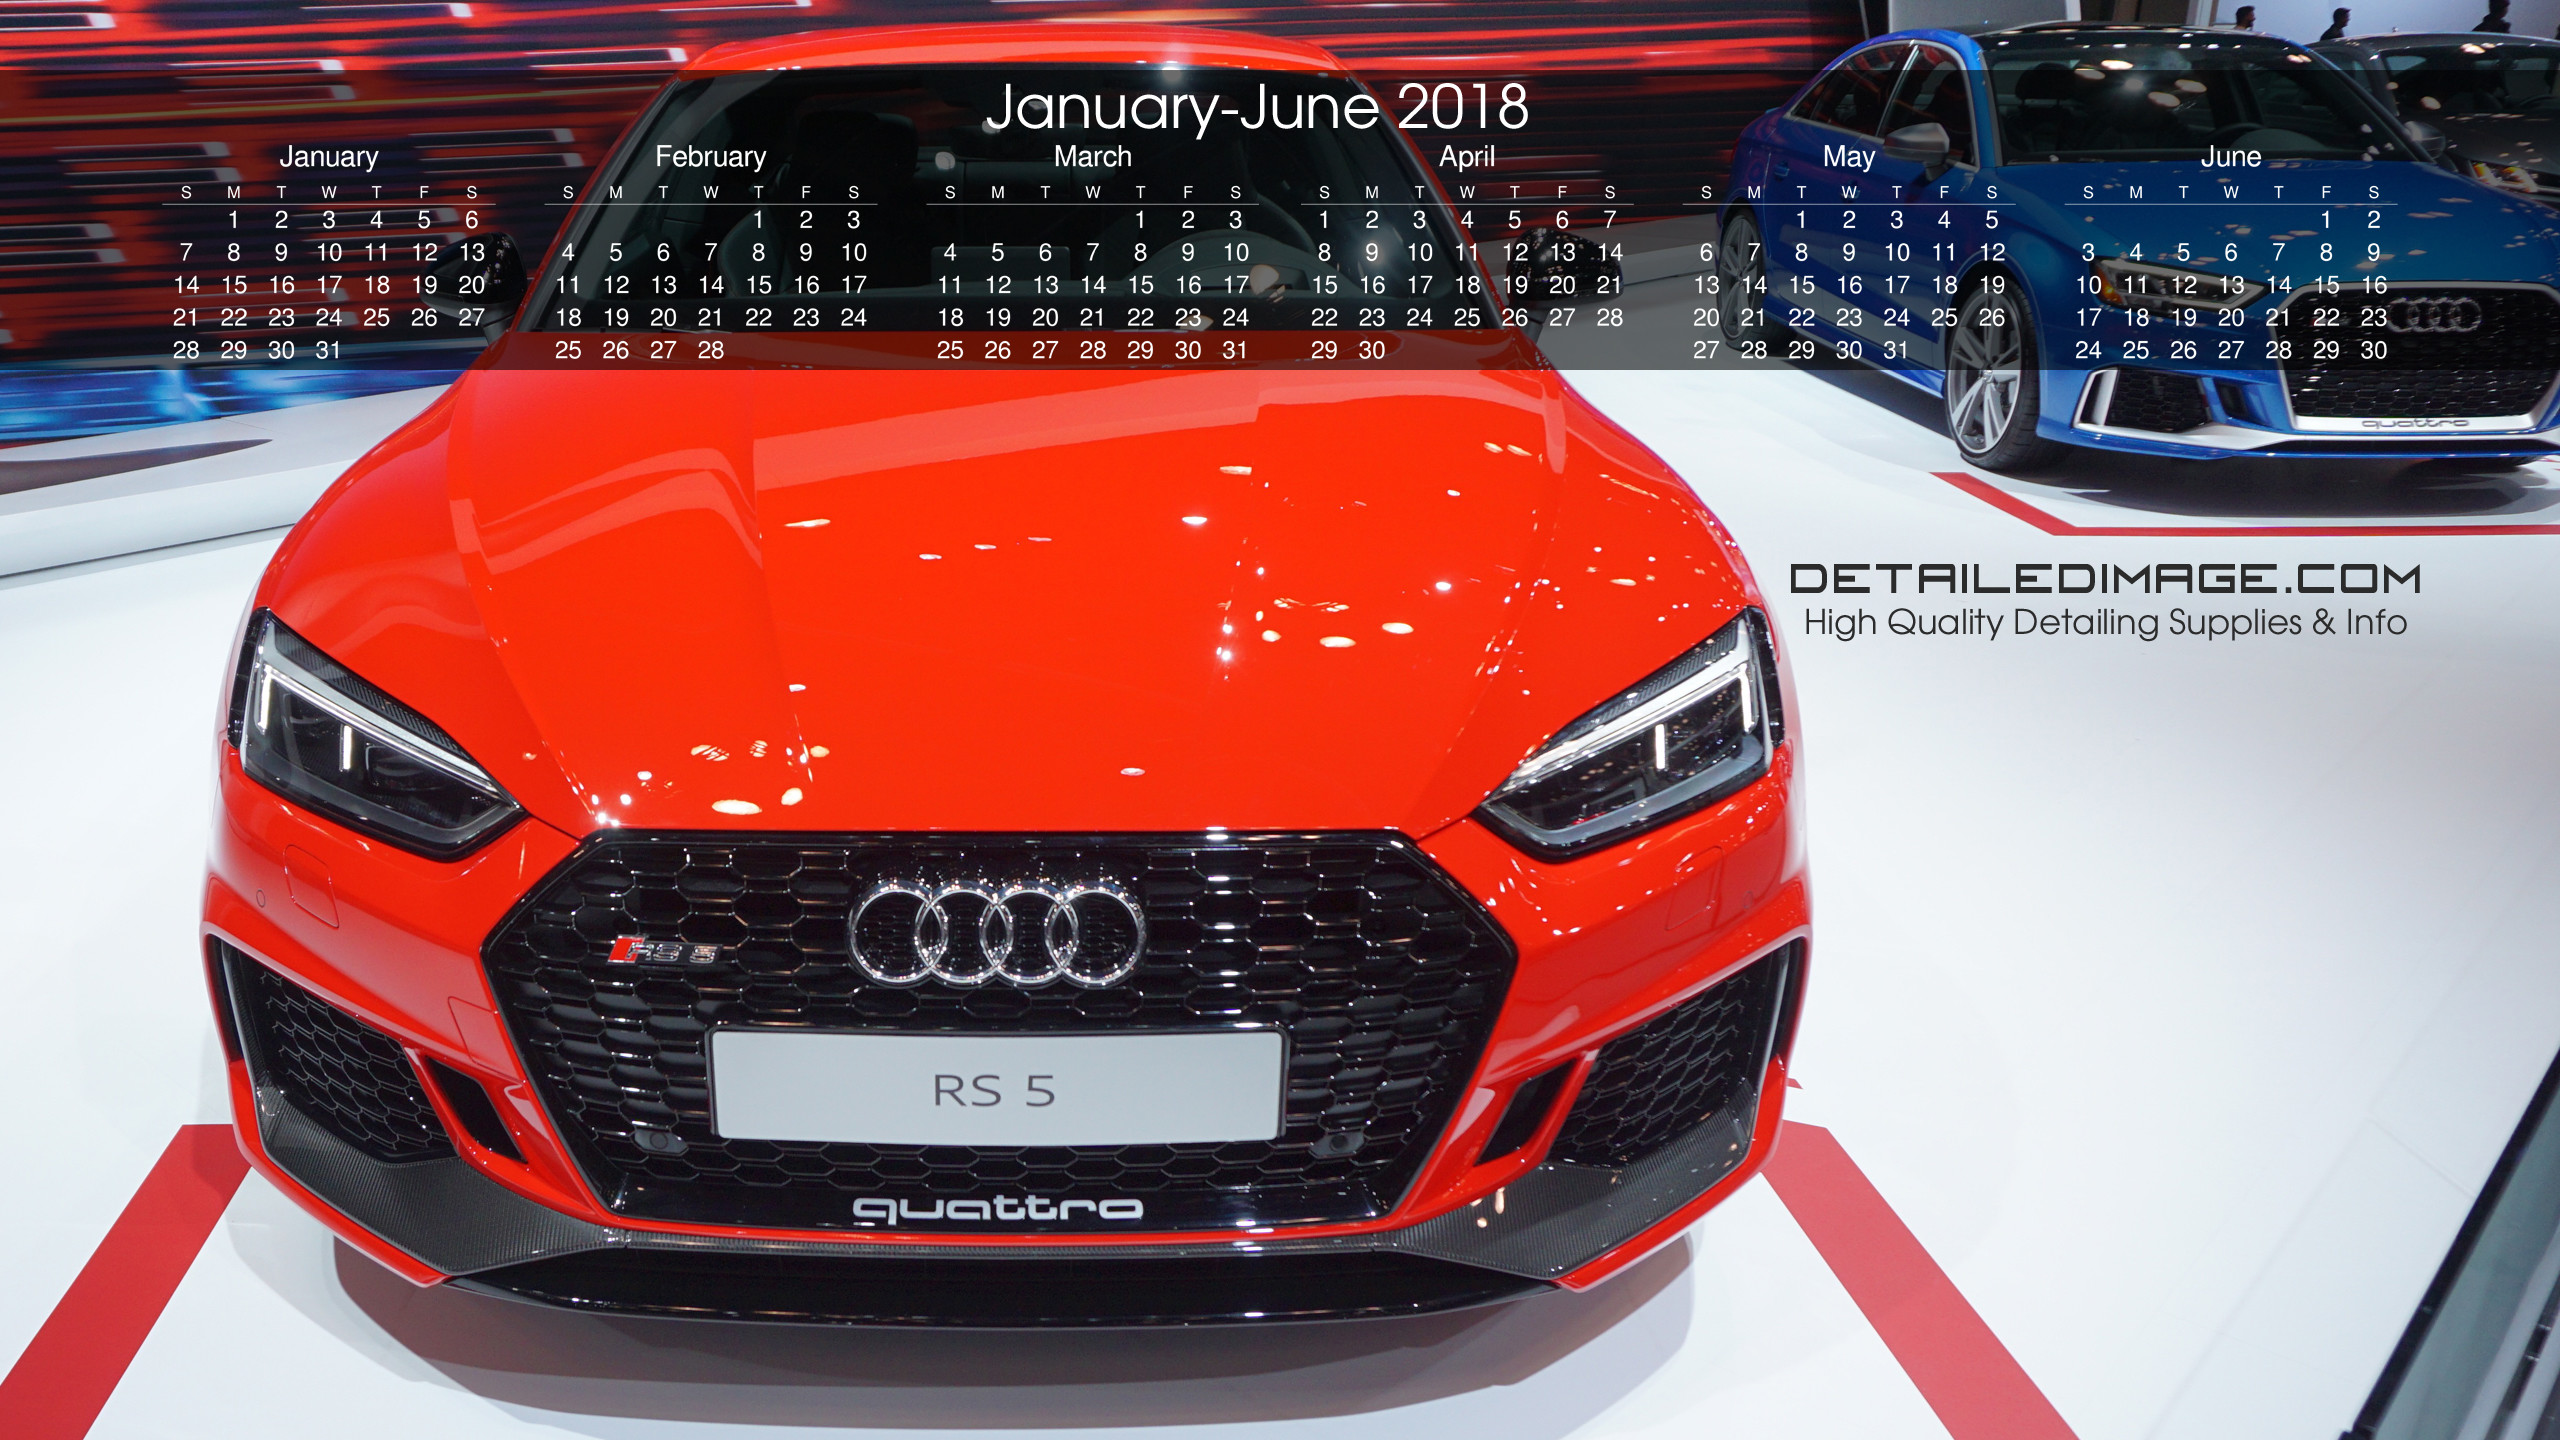 2560x1440 Detailed Image 2018 Wallpaper Calendar 1